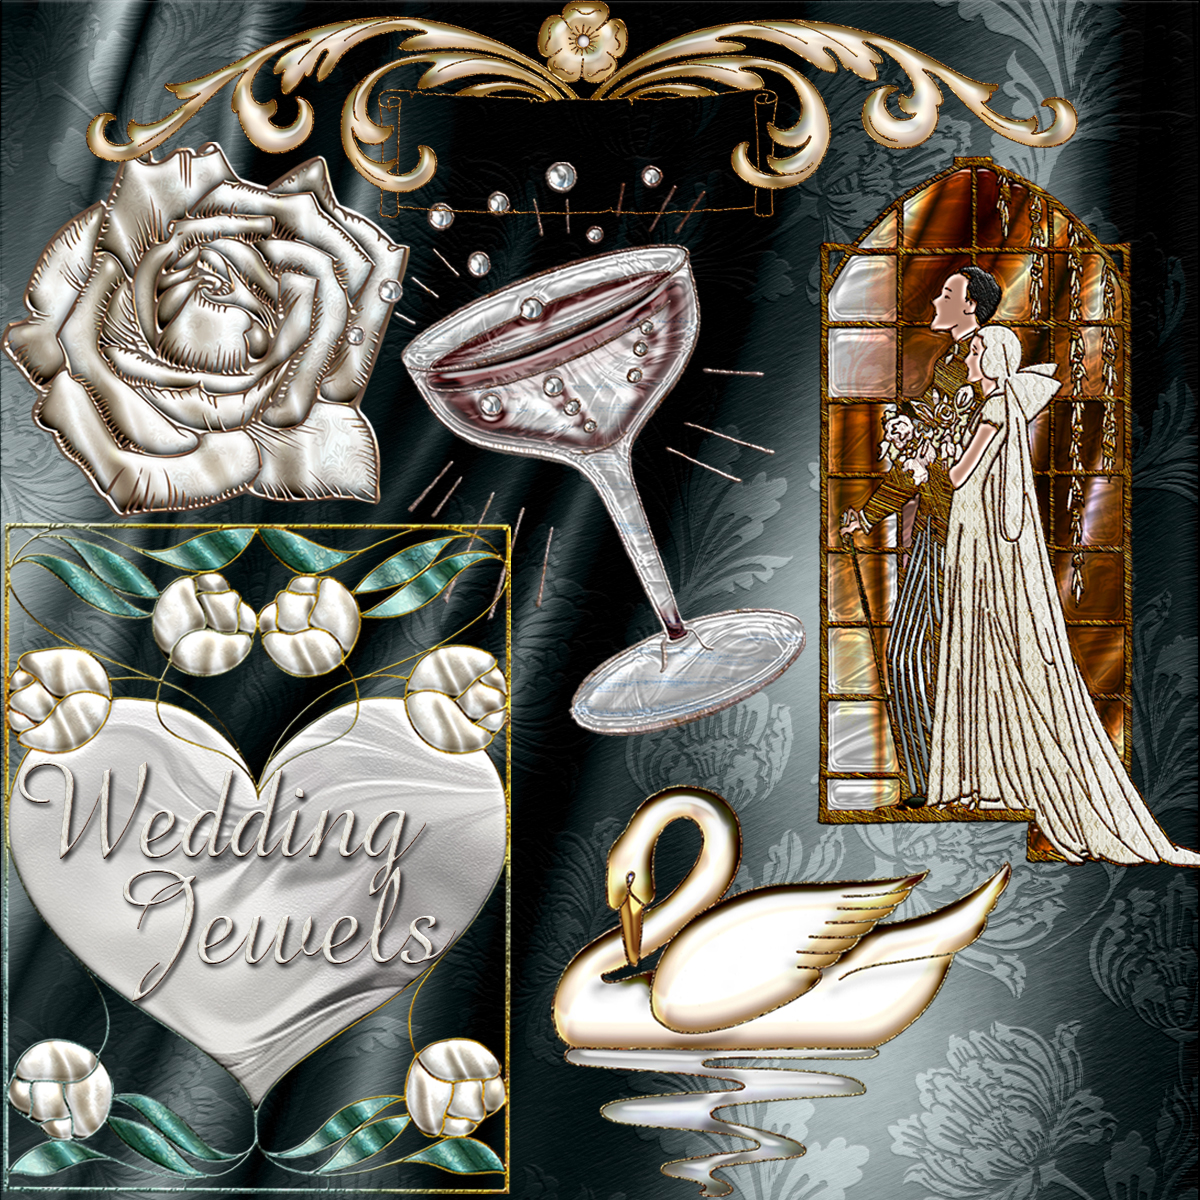 Harvest Moon's Wedding Jewels